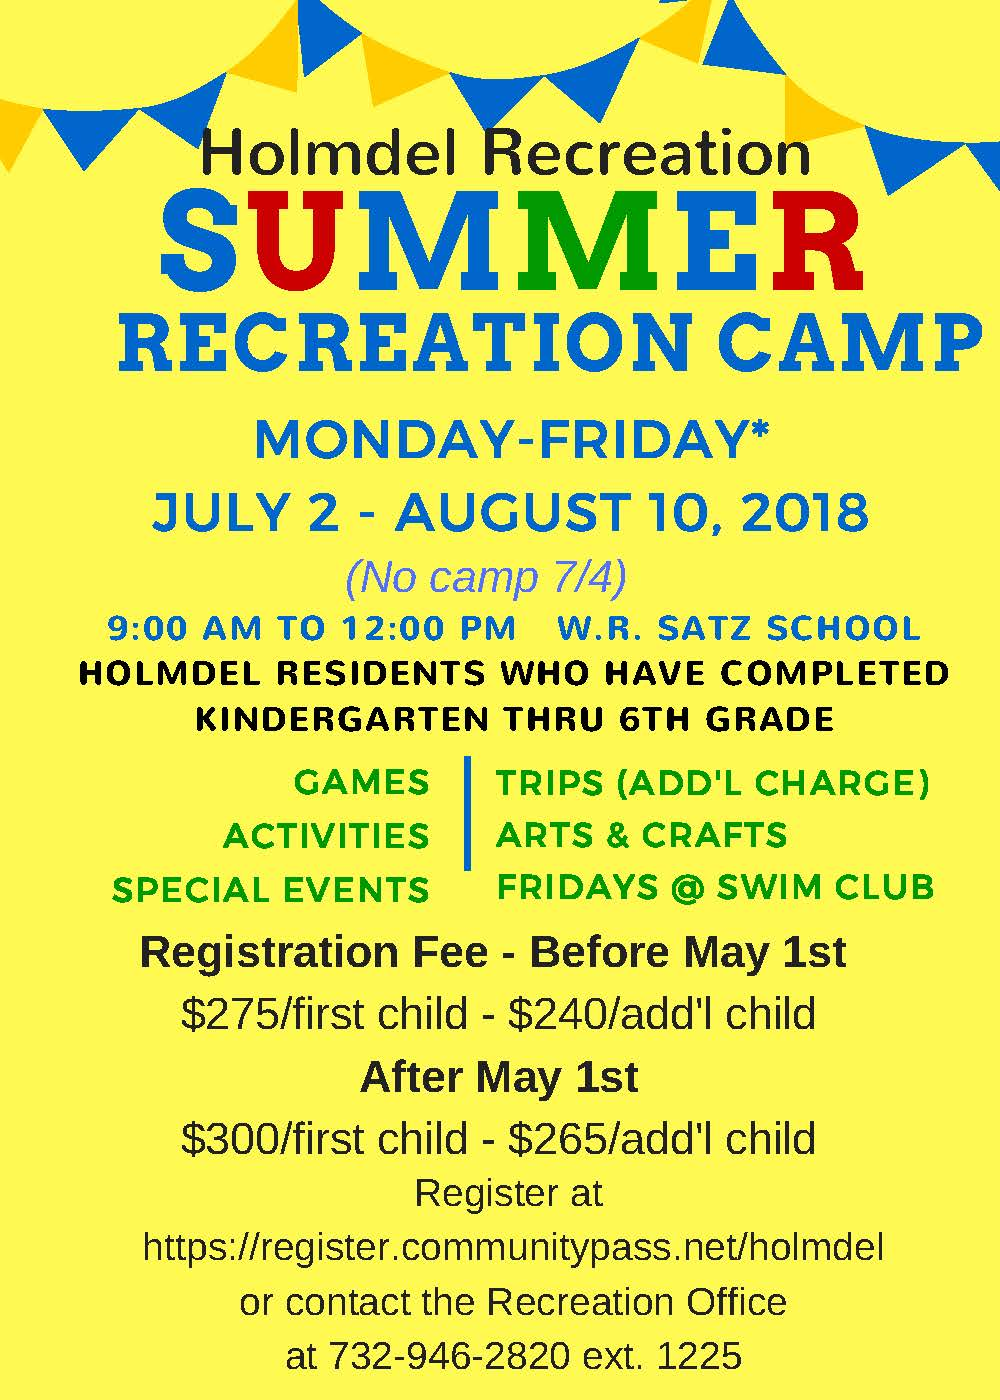 Summer Recreation Camp 2018